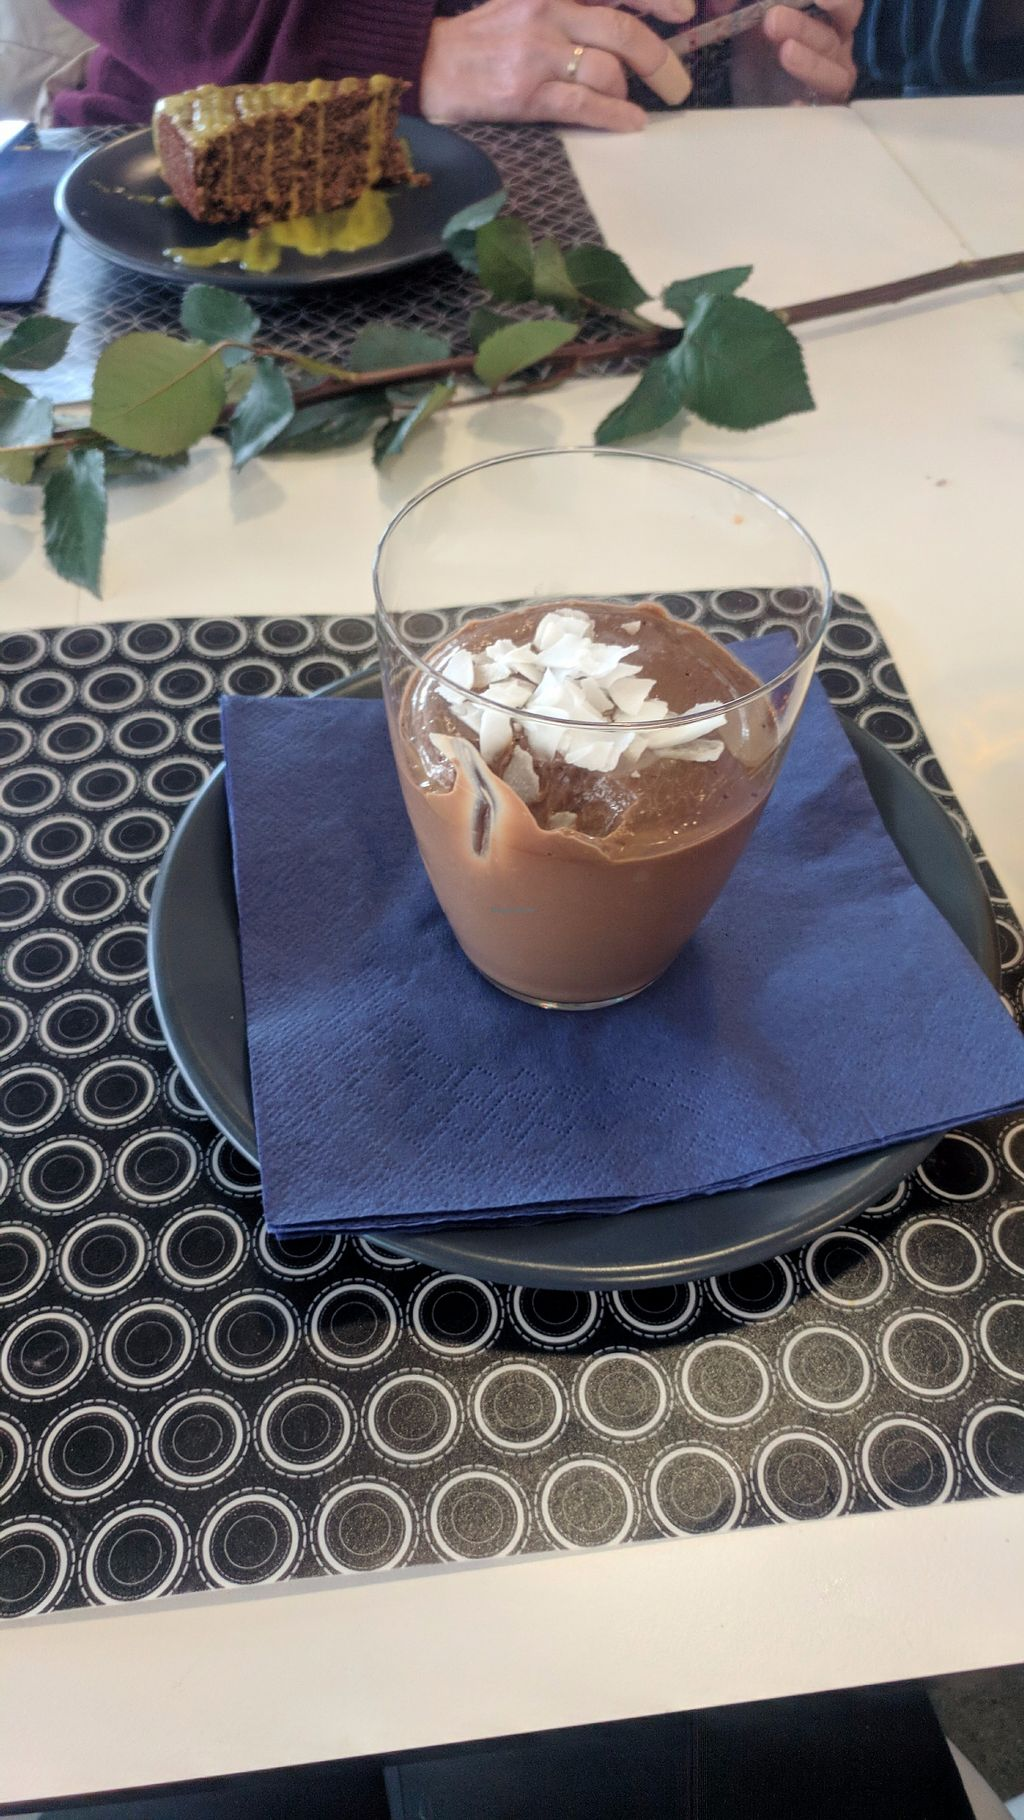 "Photo of  Zelena Avenija  by <a href=""/members/profile/SaraMarkic"">SaraMarkic</a> <br/>awesome chocolate dessert <br/> December 5, 2017  - <a href='/contact/abuse/image/105045/332641'>Report</a>"